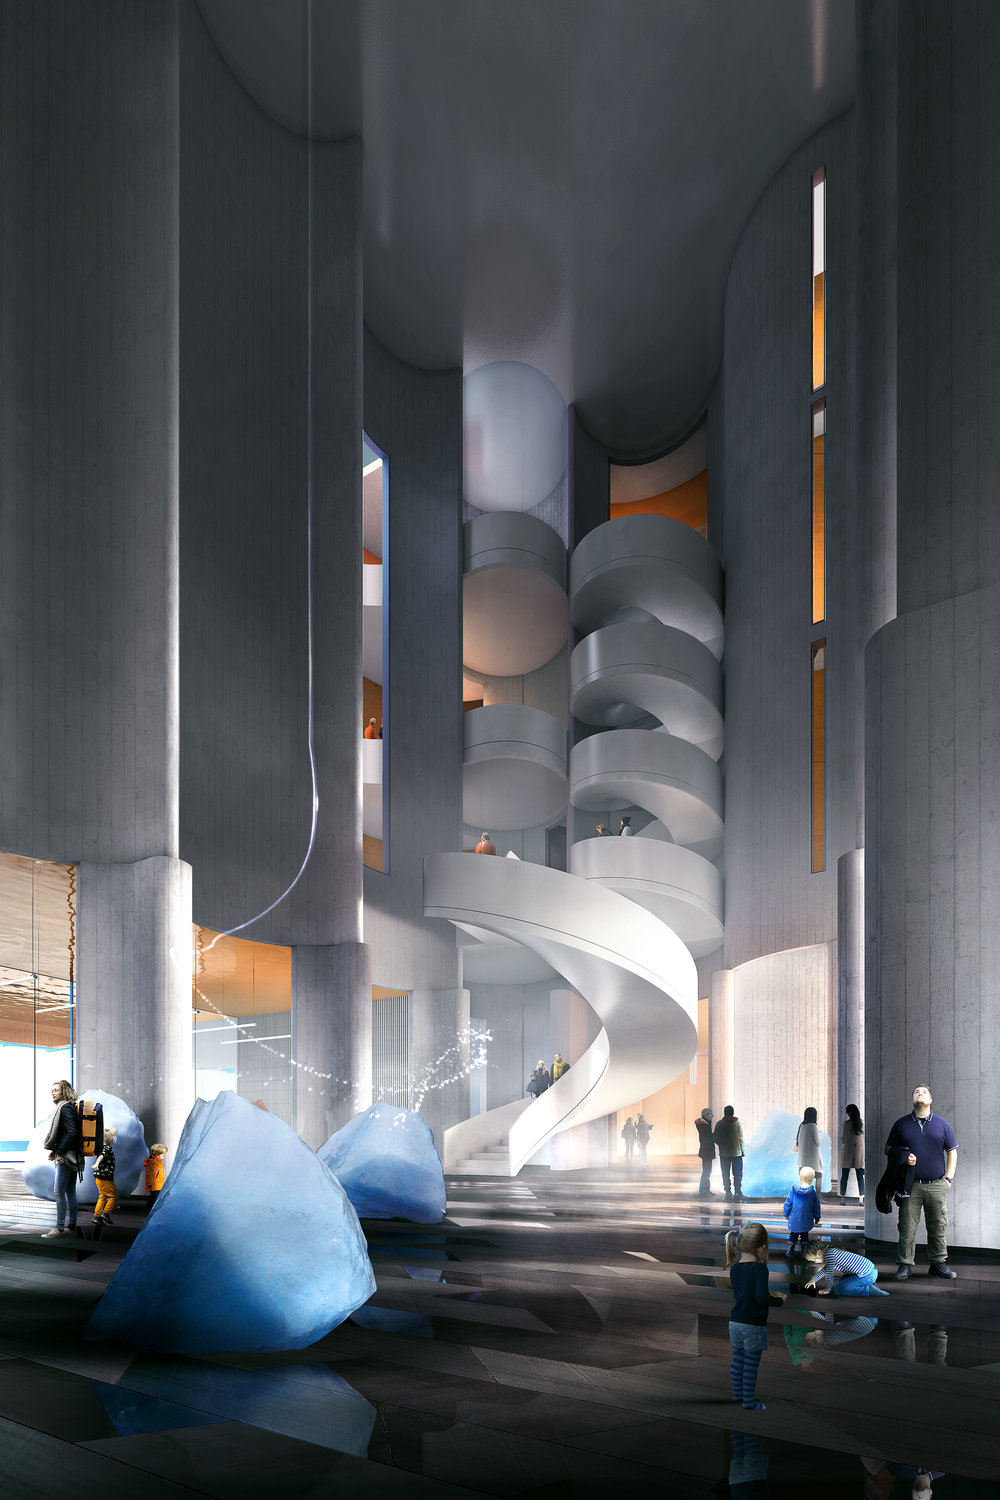 Kunstsilo - Art museum project in Kristiansand, Norway.